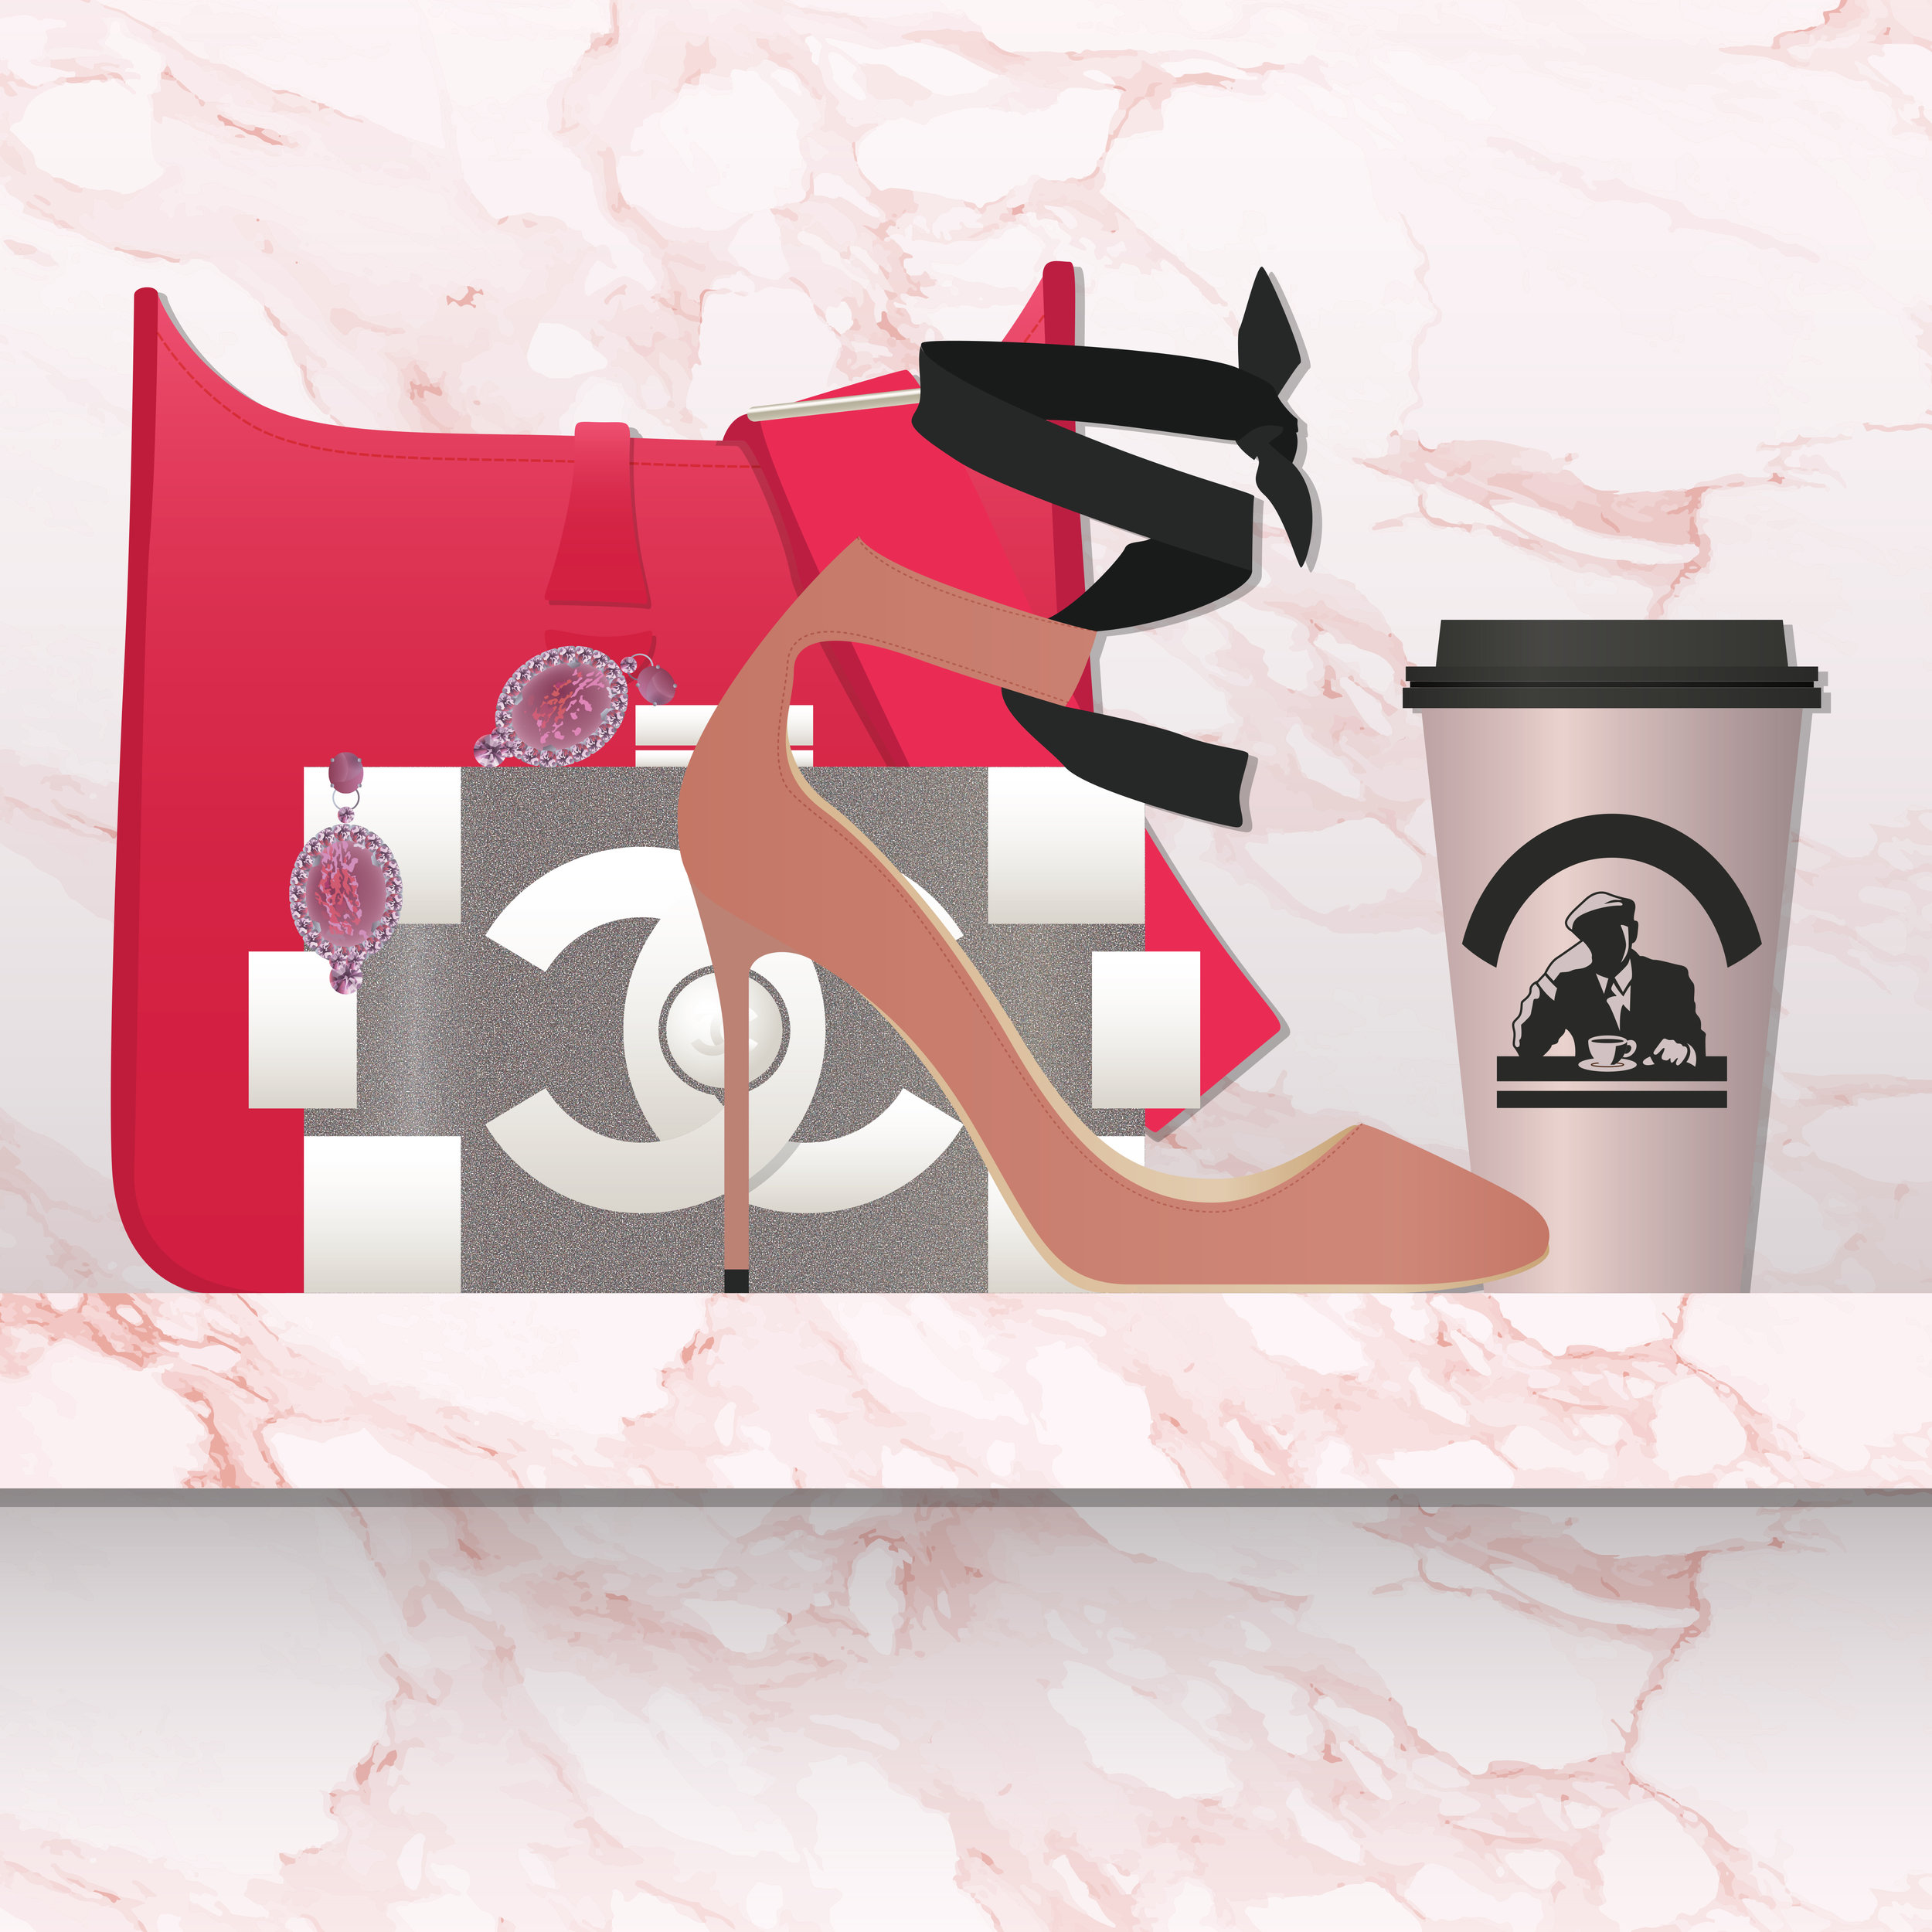 Left to right: Hermes Rouge Pivoine Clemence Leather Evelyne PM I Bag, Thorin Pink Marble Earring, Chanel Lego Clutch, Jimmy Choo Pink Rosana Velvet and Leather Ankle-Tie Pumps, Joe & The Juice Cup